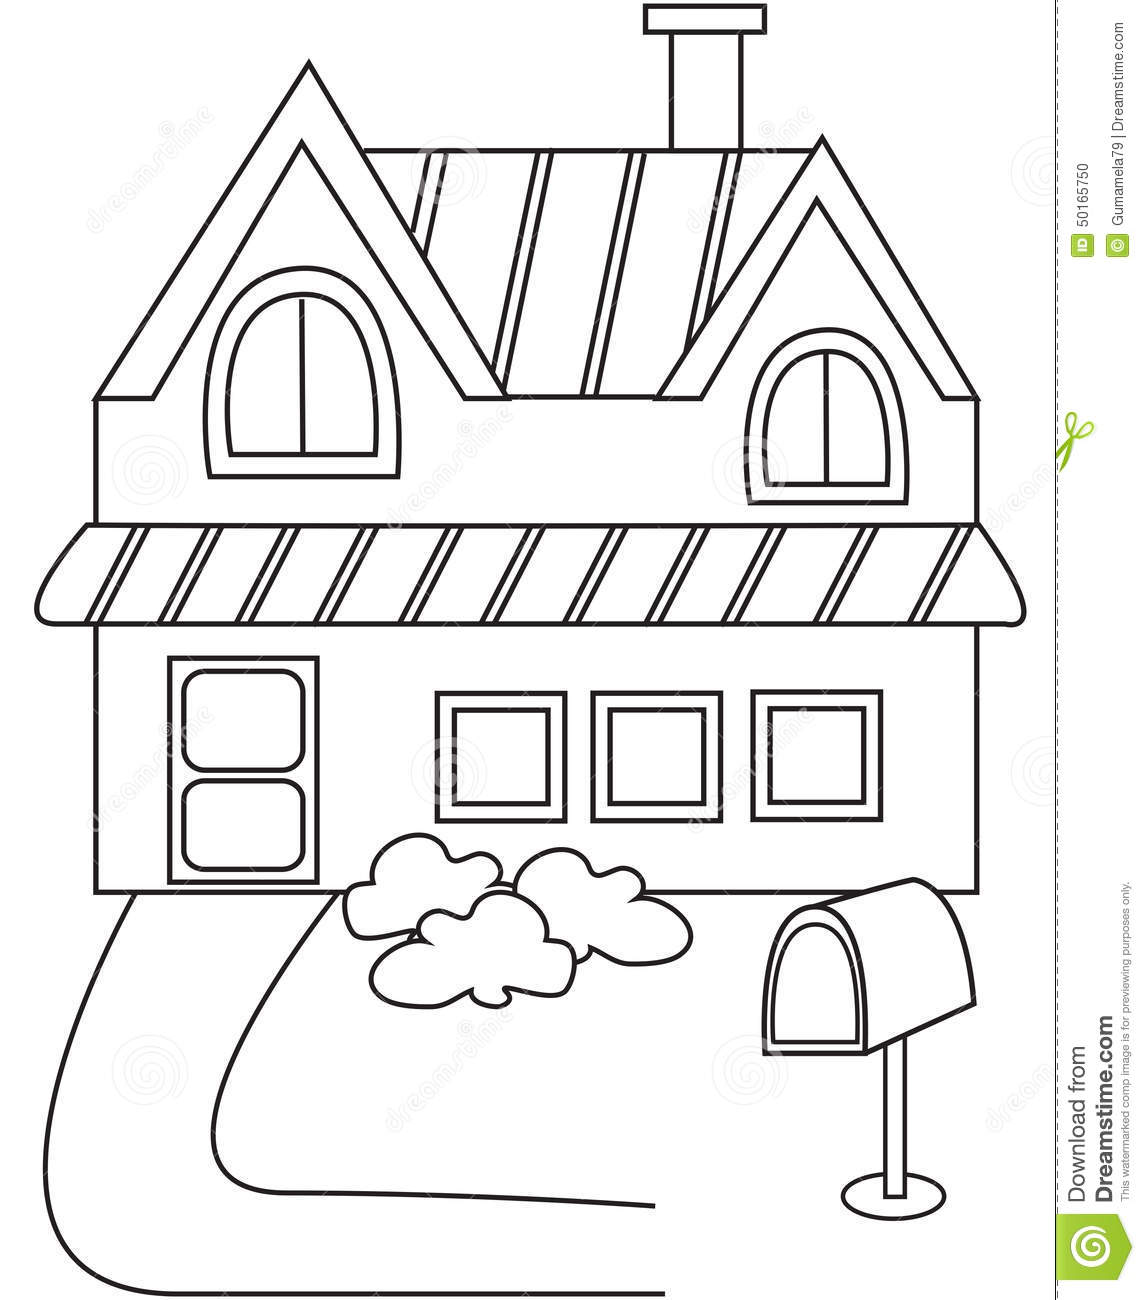 house coloring page stock illustration  illustration of characters